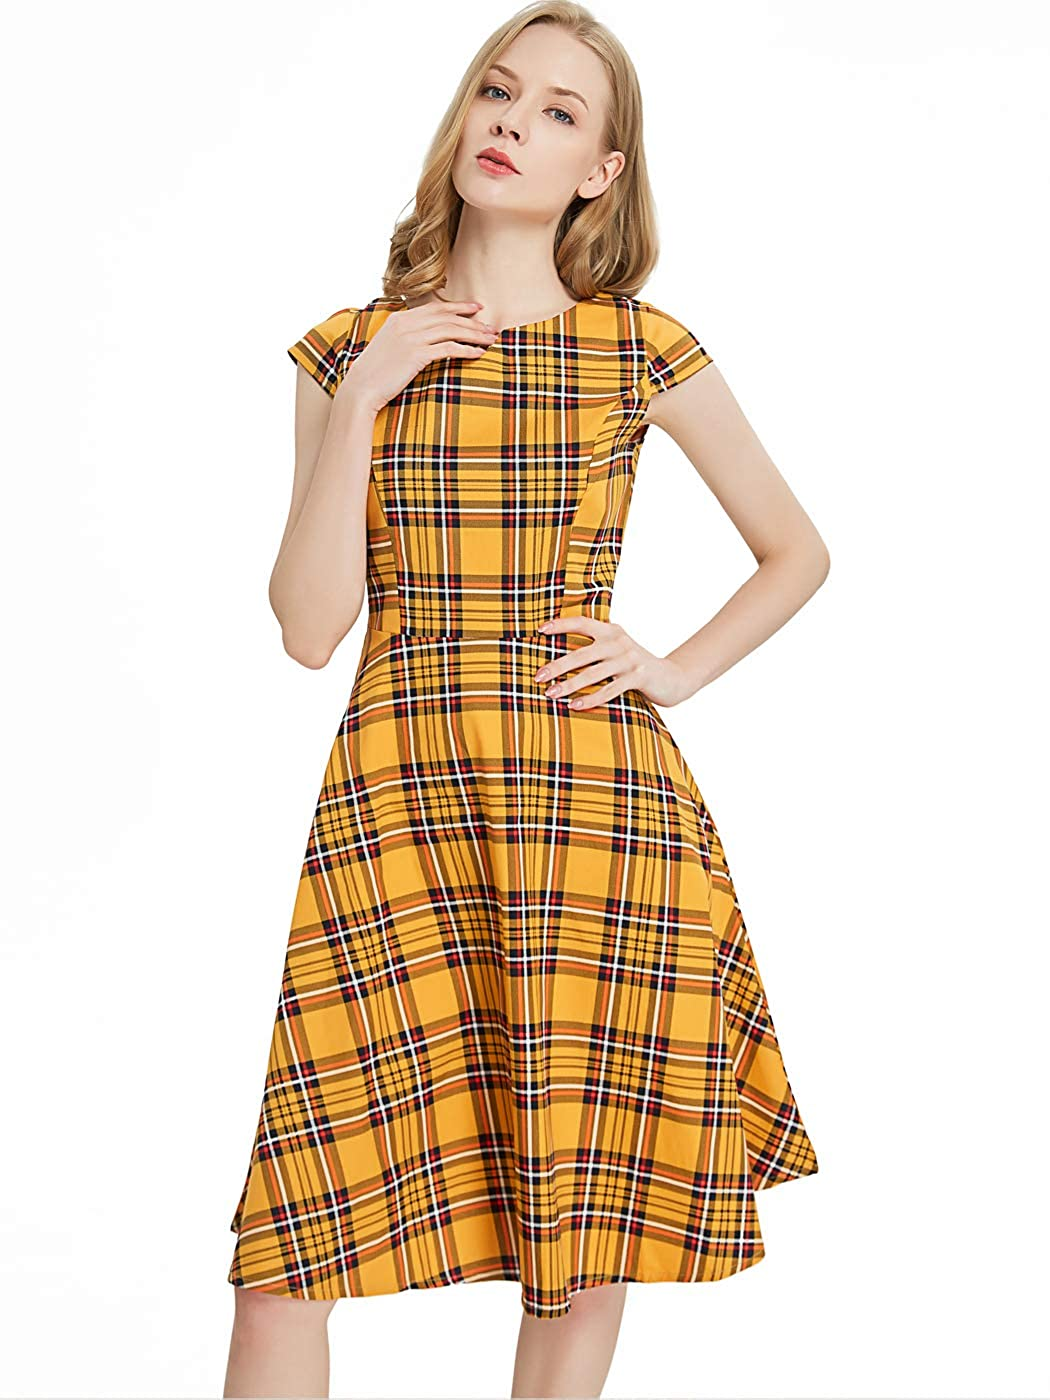 FAIRY COUPLE Vintage Rockabilly Cap Sleeves Prom Dress DRT019 Gold Plaid